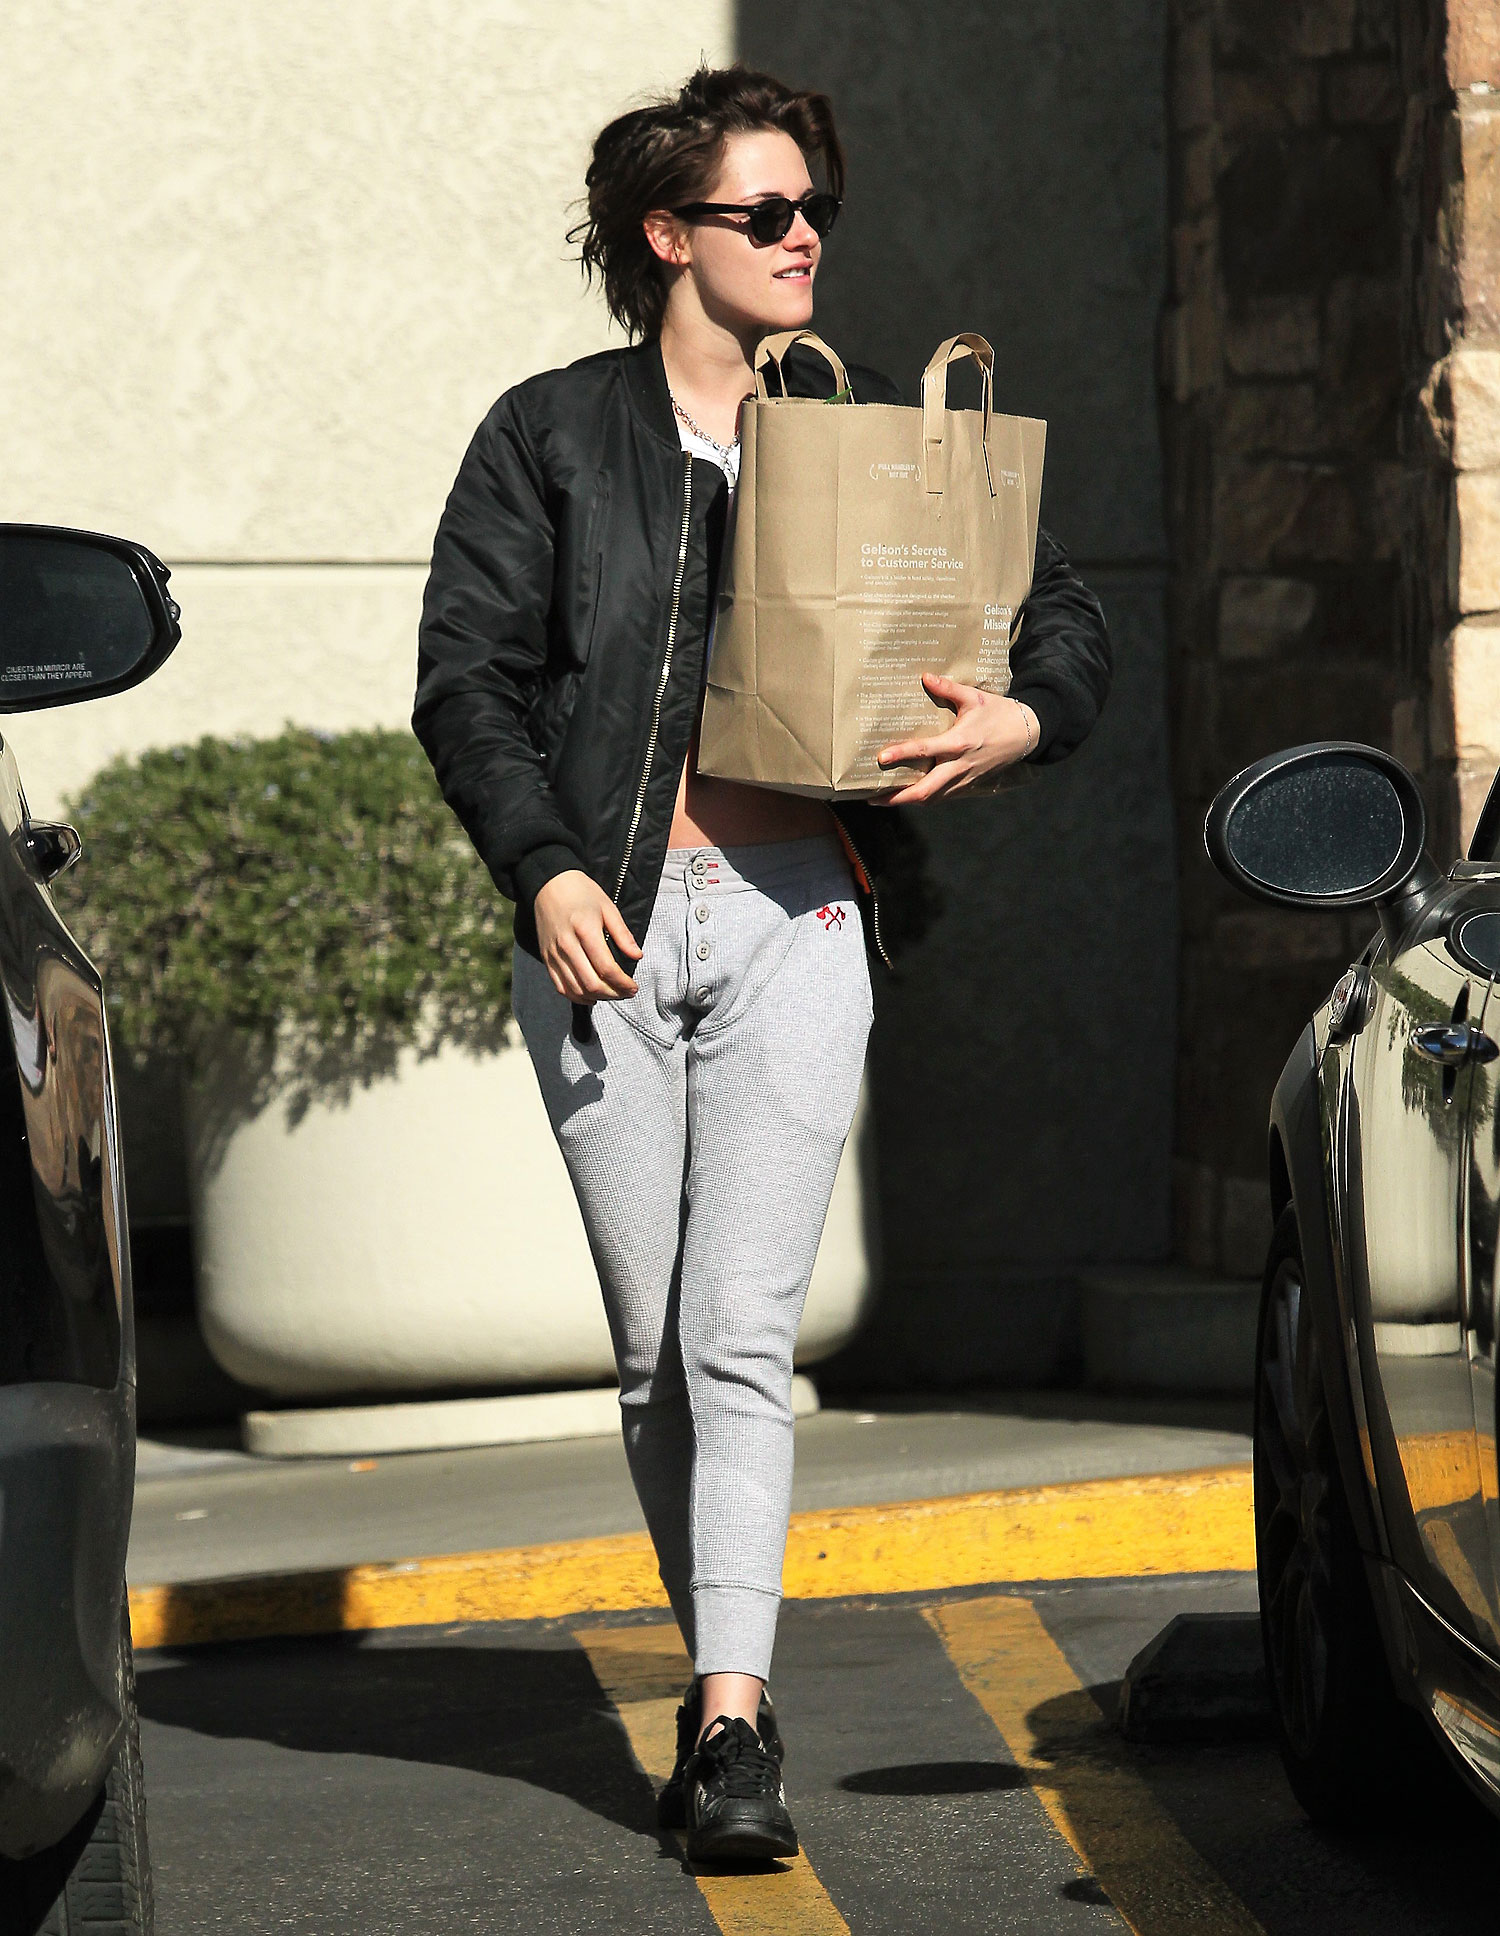 EXCLUSIVE: Kristen Stewart reveals her abs in a half shirt while shopping at Gelsons in Los Feliz .